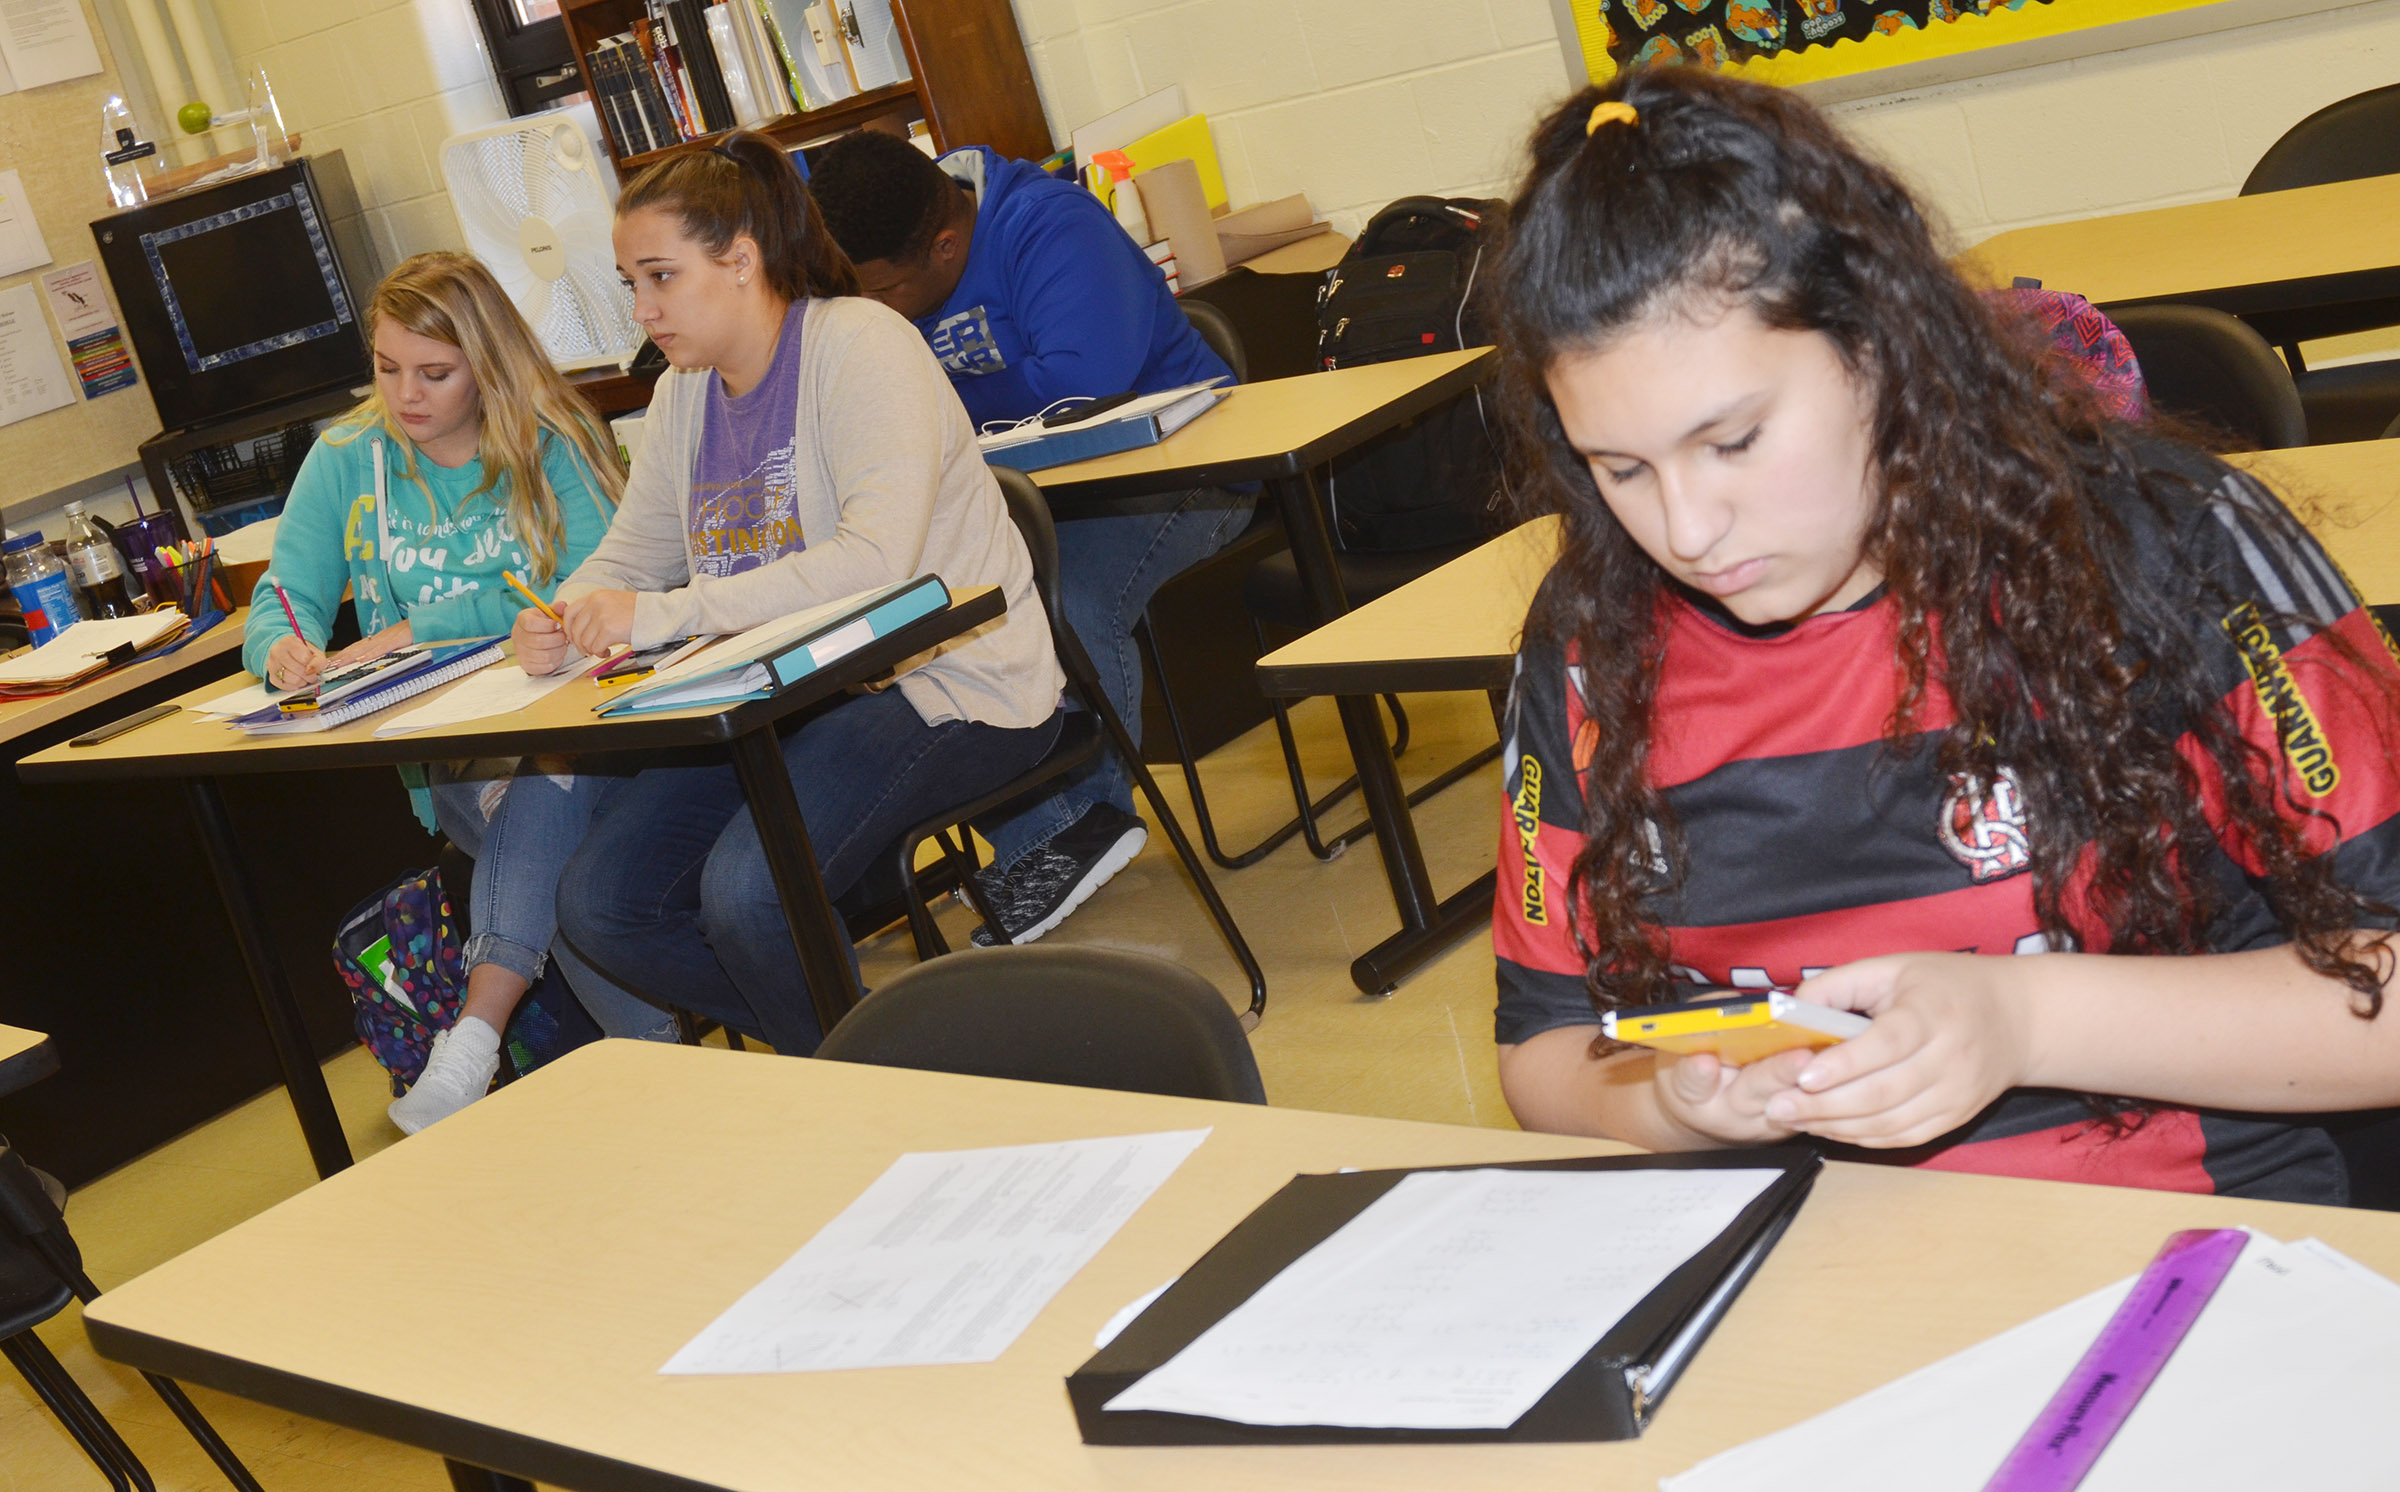 From left, CHS juniors Hayley Stapleton, Elizabeth Sullivan and Jeremiah Jackson and freshman Anna Clara Moura work to complete some math problems.